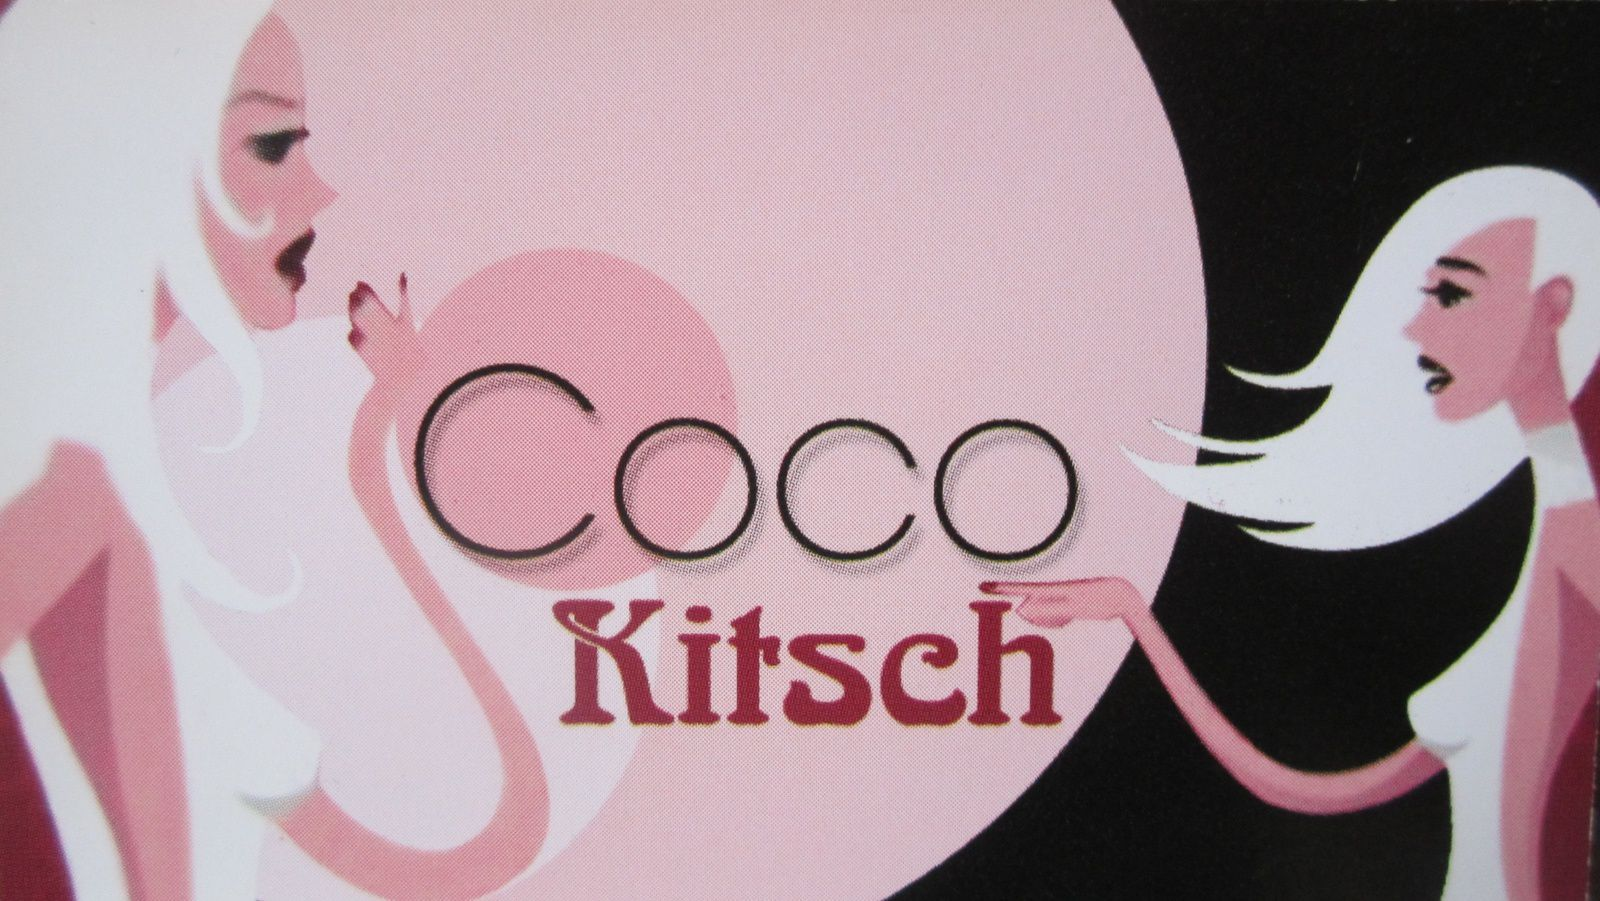 COCO KITSCH ANGERS